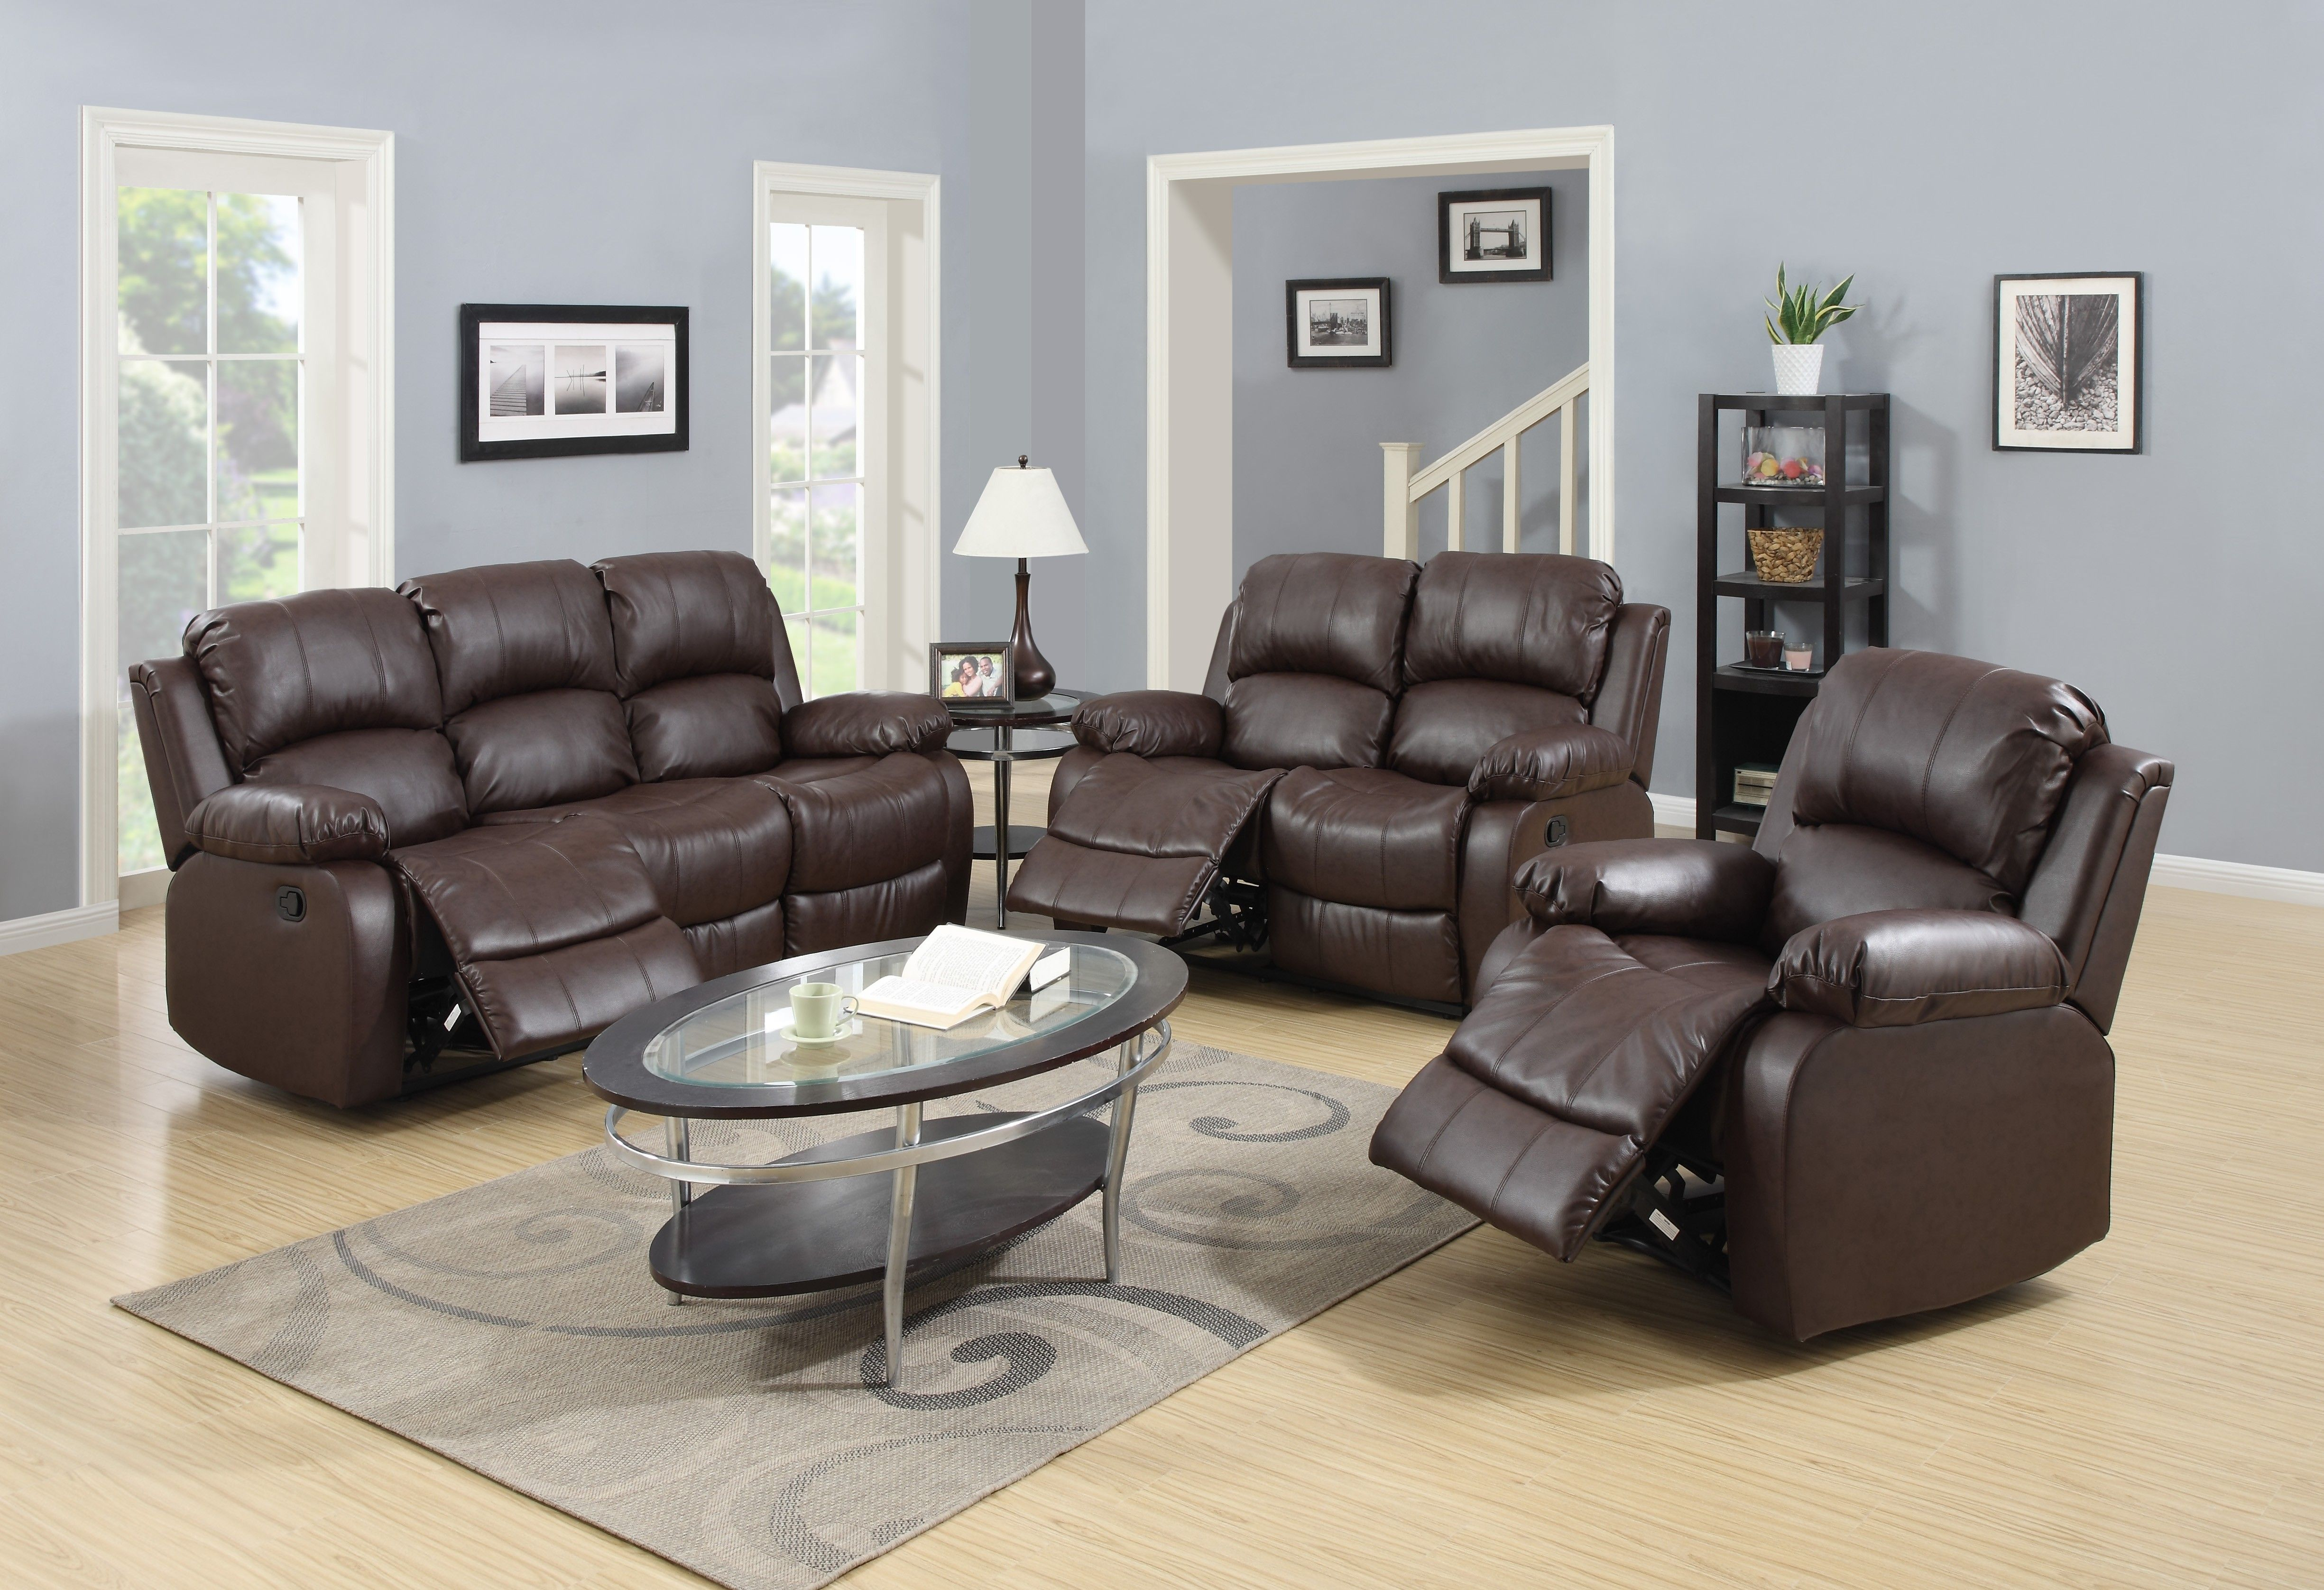 Cool Sears Reclining Sofa , Beautiful Sears Reclining Sofa 33 For Your  Living Room Sofa Inspiration